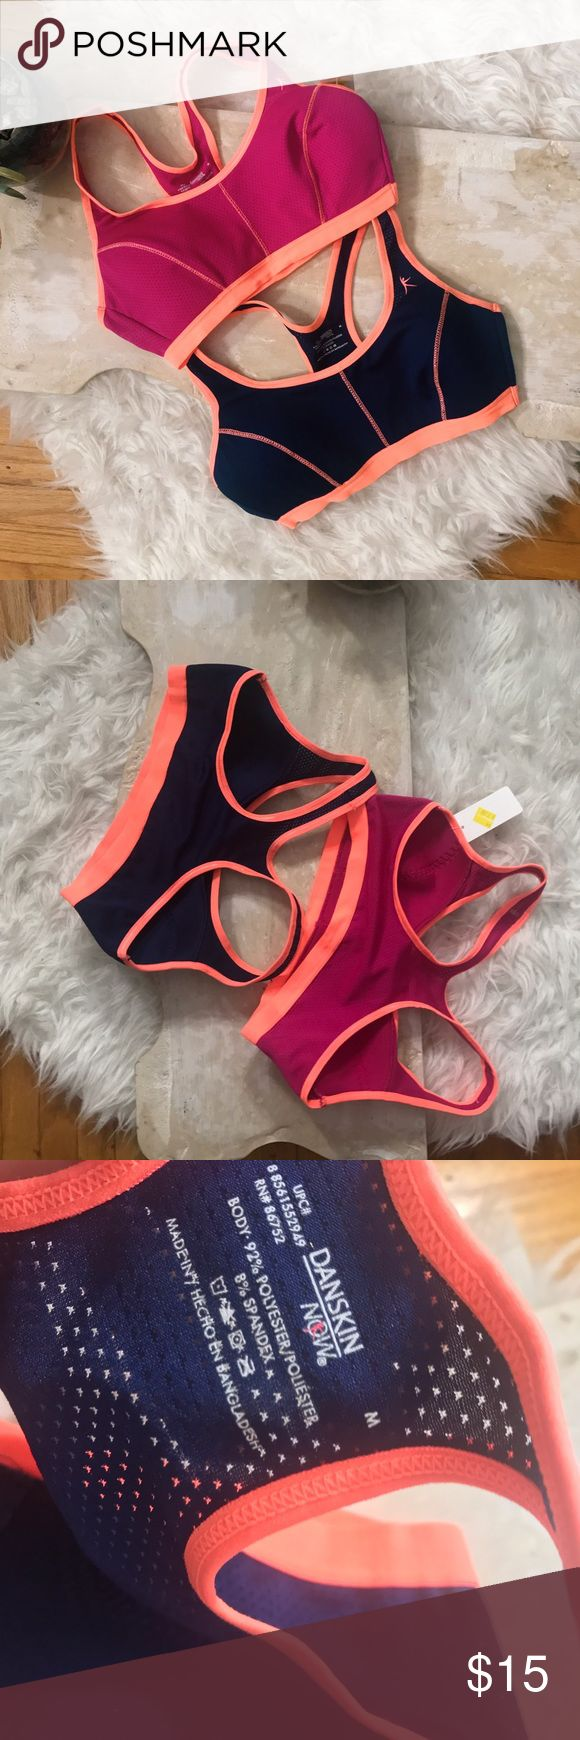 NWT sports bra lot Super cute navy and pink with orange sports bras that have never been worn! If you have any questions just ask! NOT NIKE Nike Intimates & Sleepwear Bras